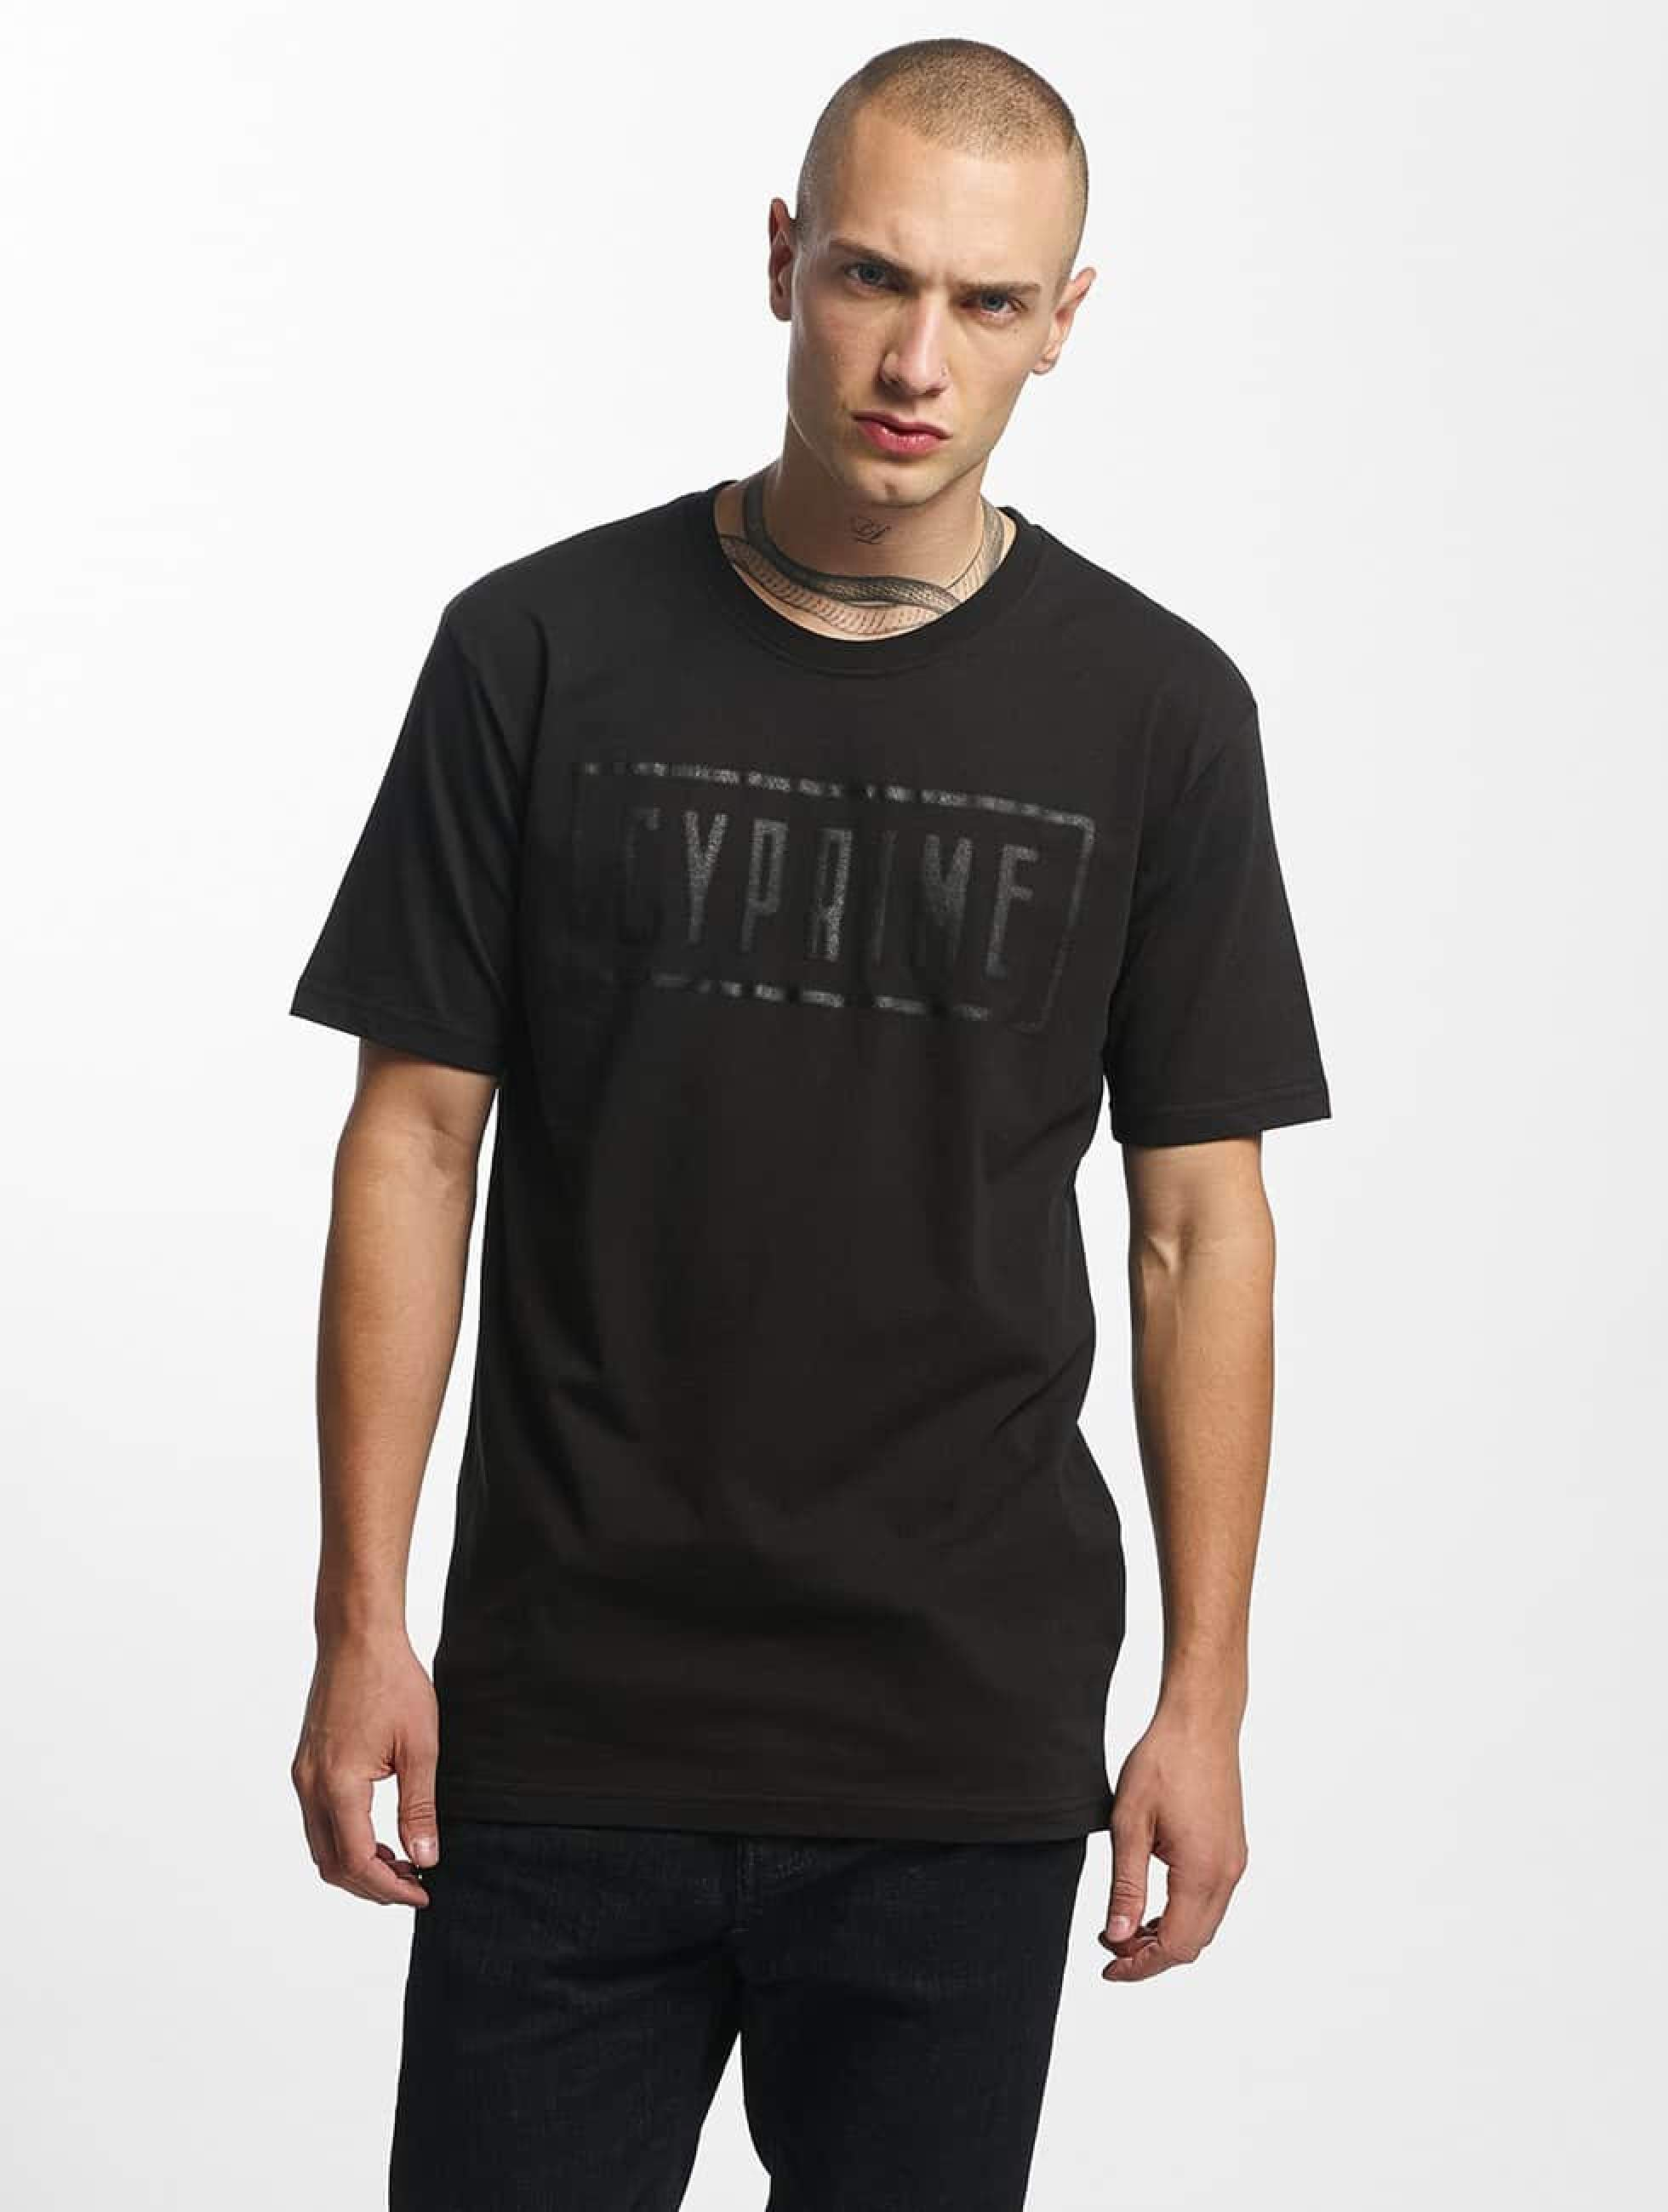 Cyprime / T-Shirt Astatine in black S